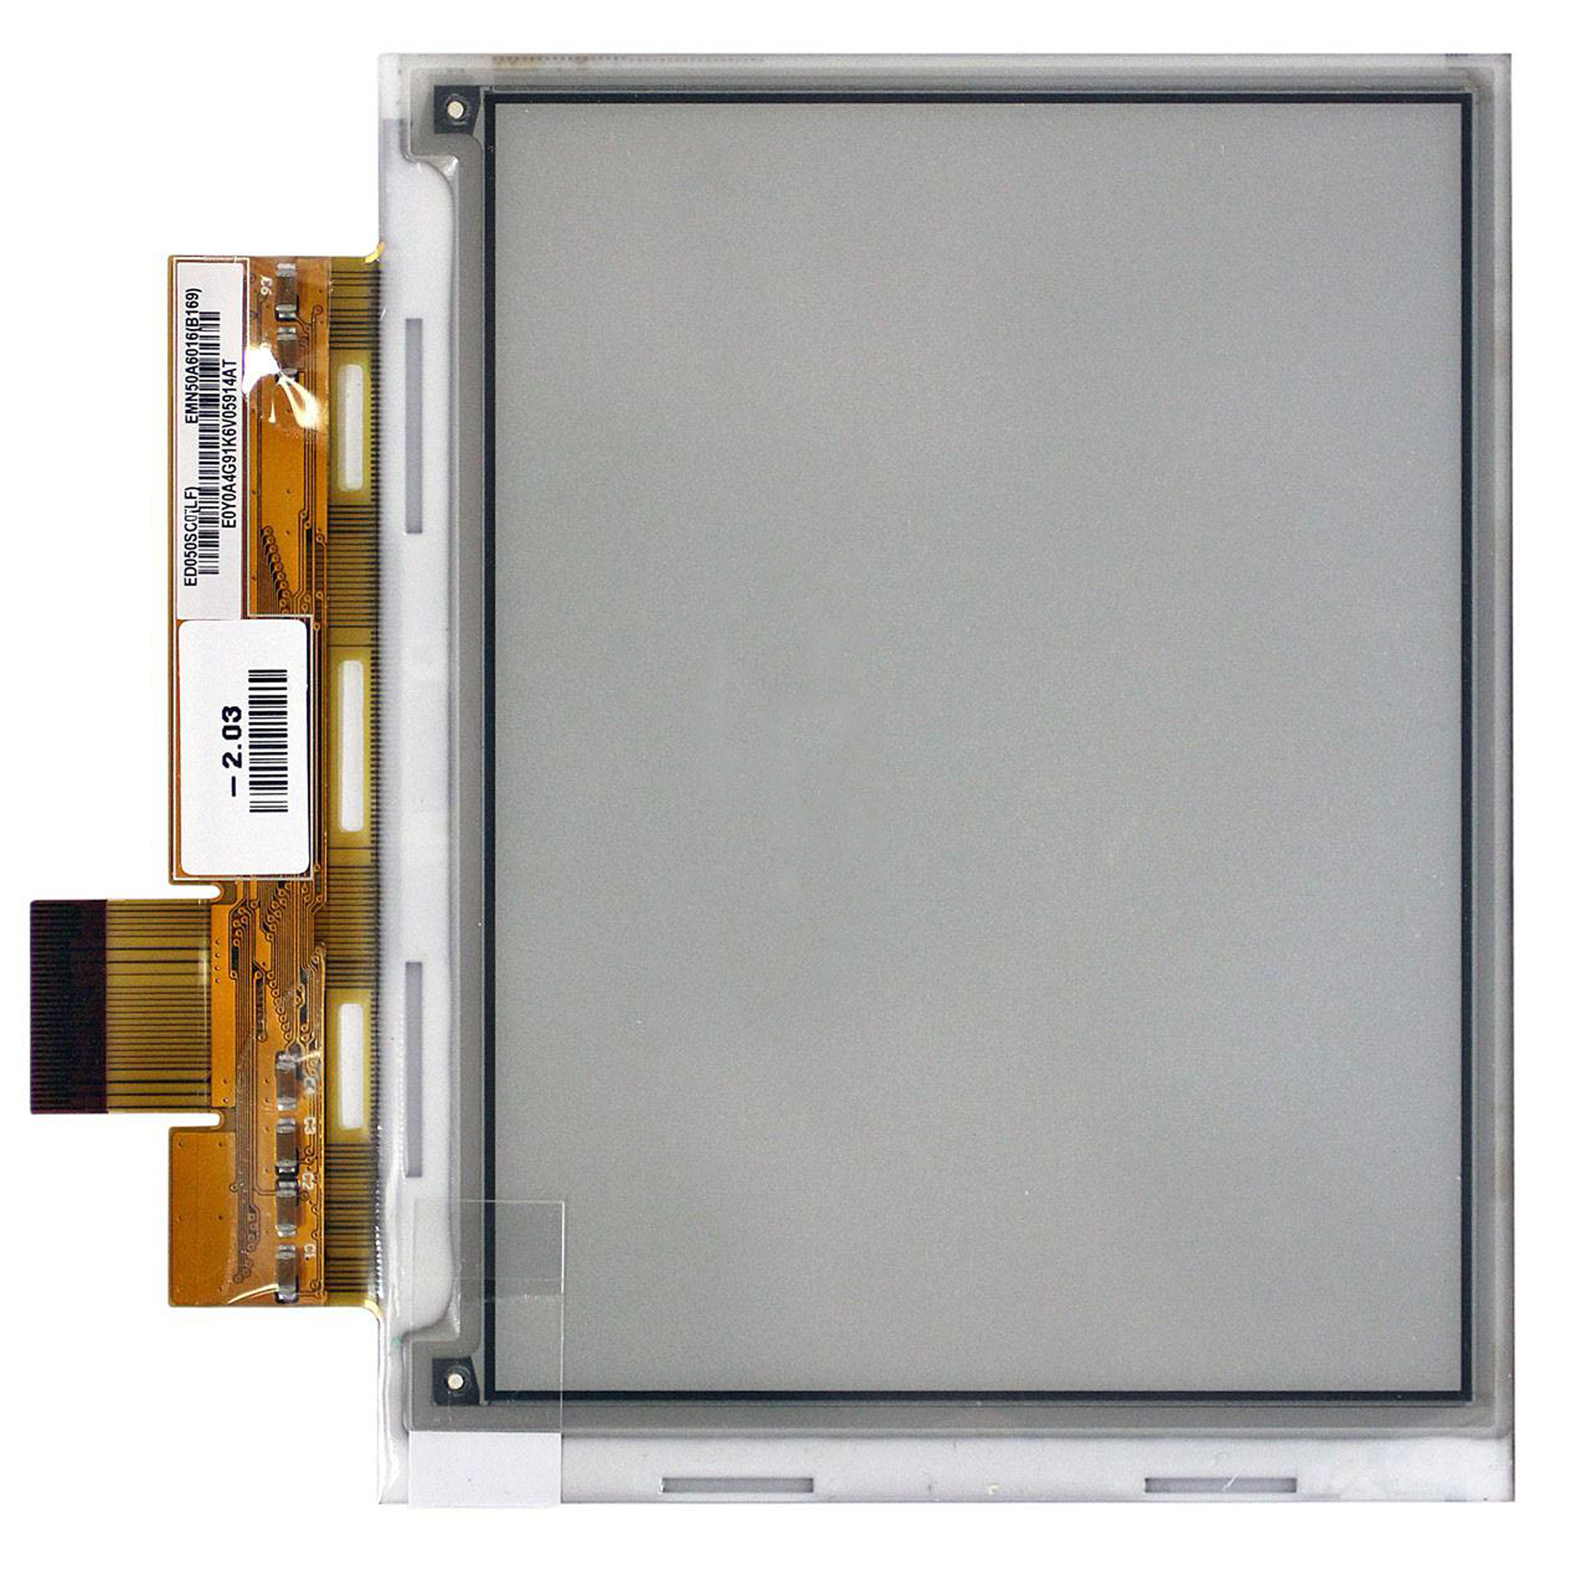 New Original 5 Inch 800*600 E-ink LCD Screen Display For Kobo mini Ebook Reader LCD display